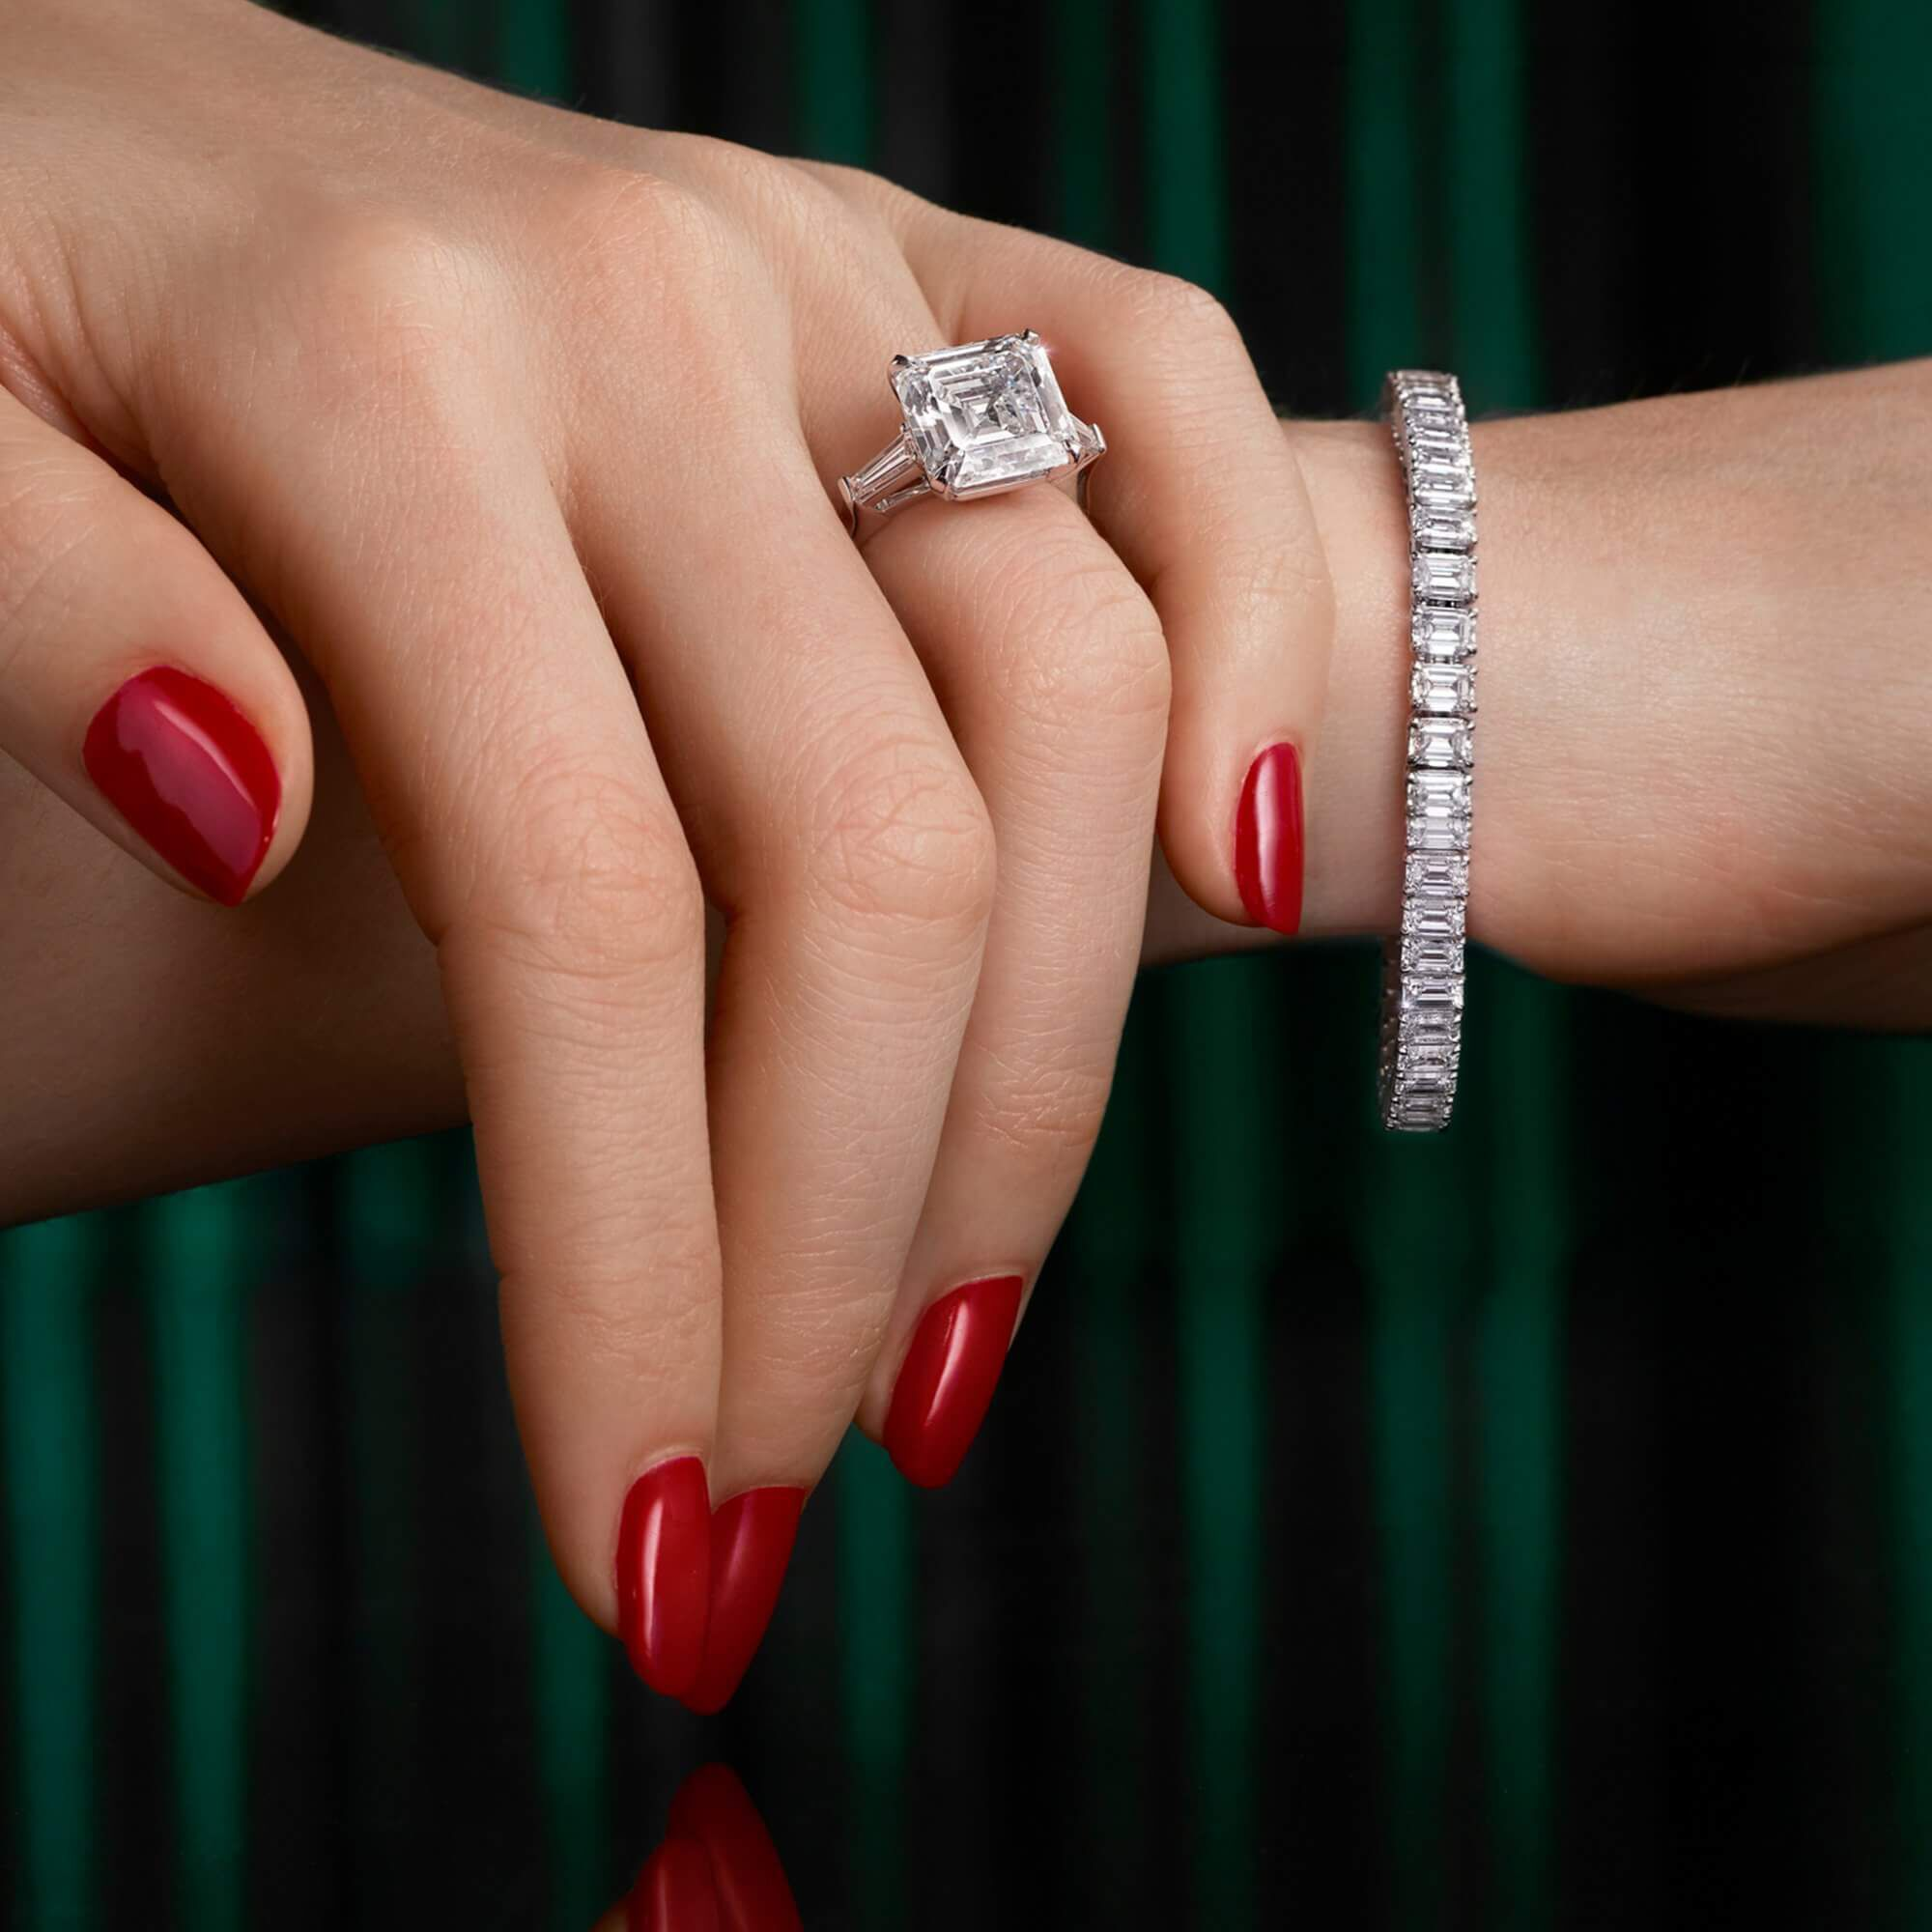 a lady wearing a graff emerald cut ring and bracelet from the Graff high jewellery collection